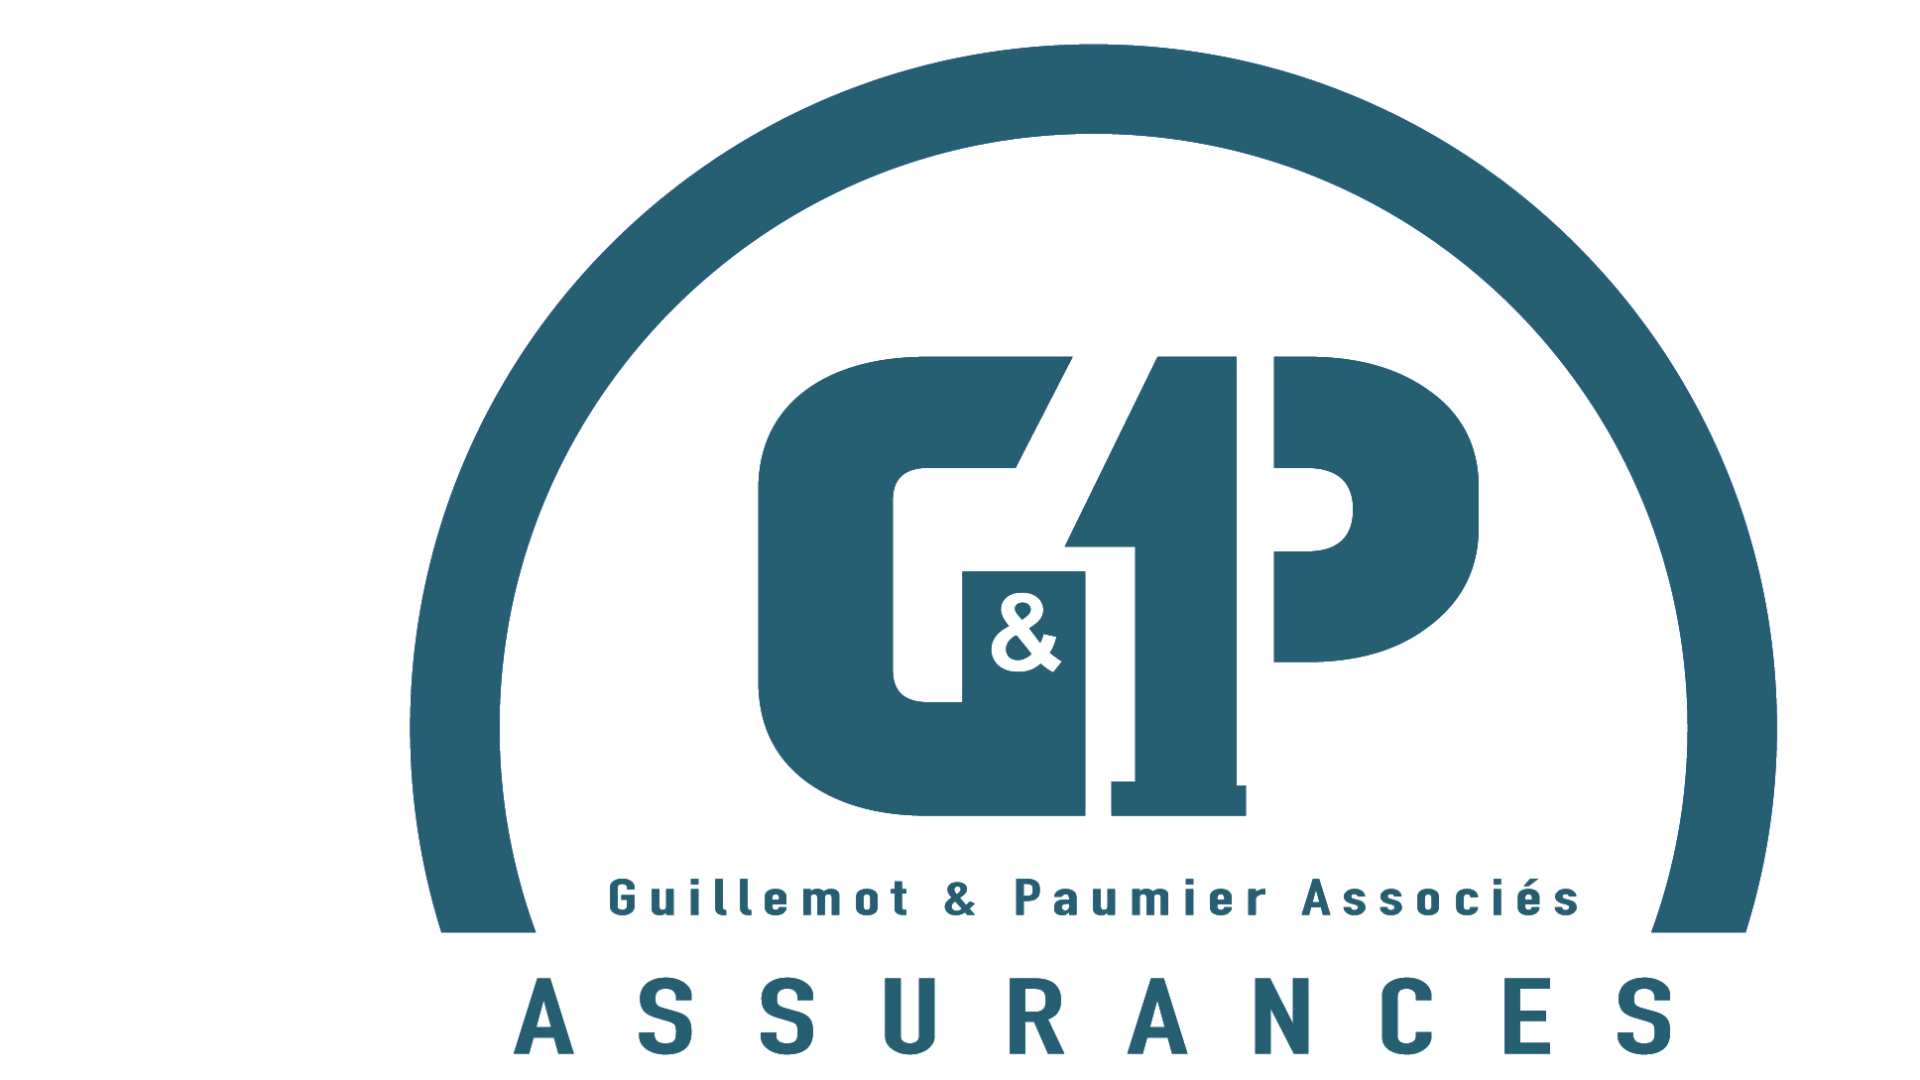 Allianz REDON ST SAUVEUR - G&p ASSURANCES ET ASSOCIES